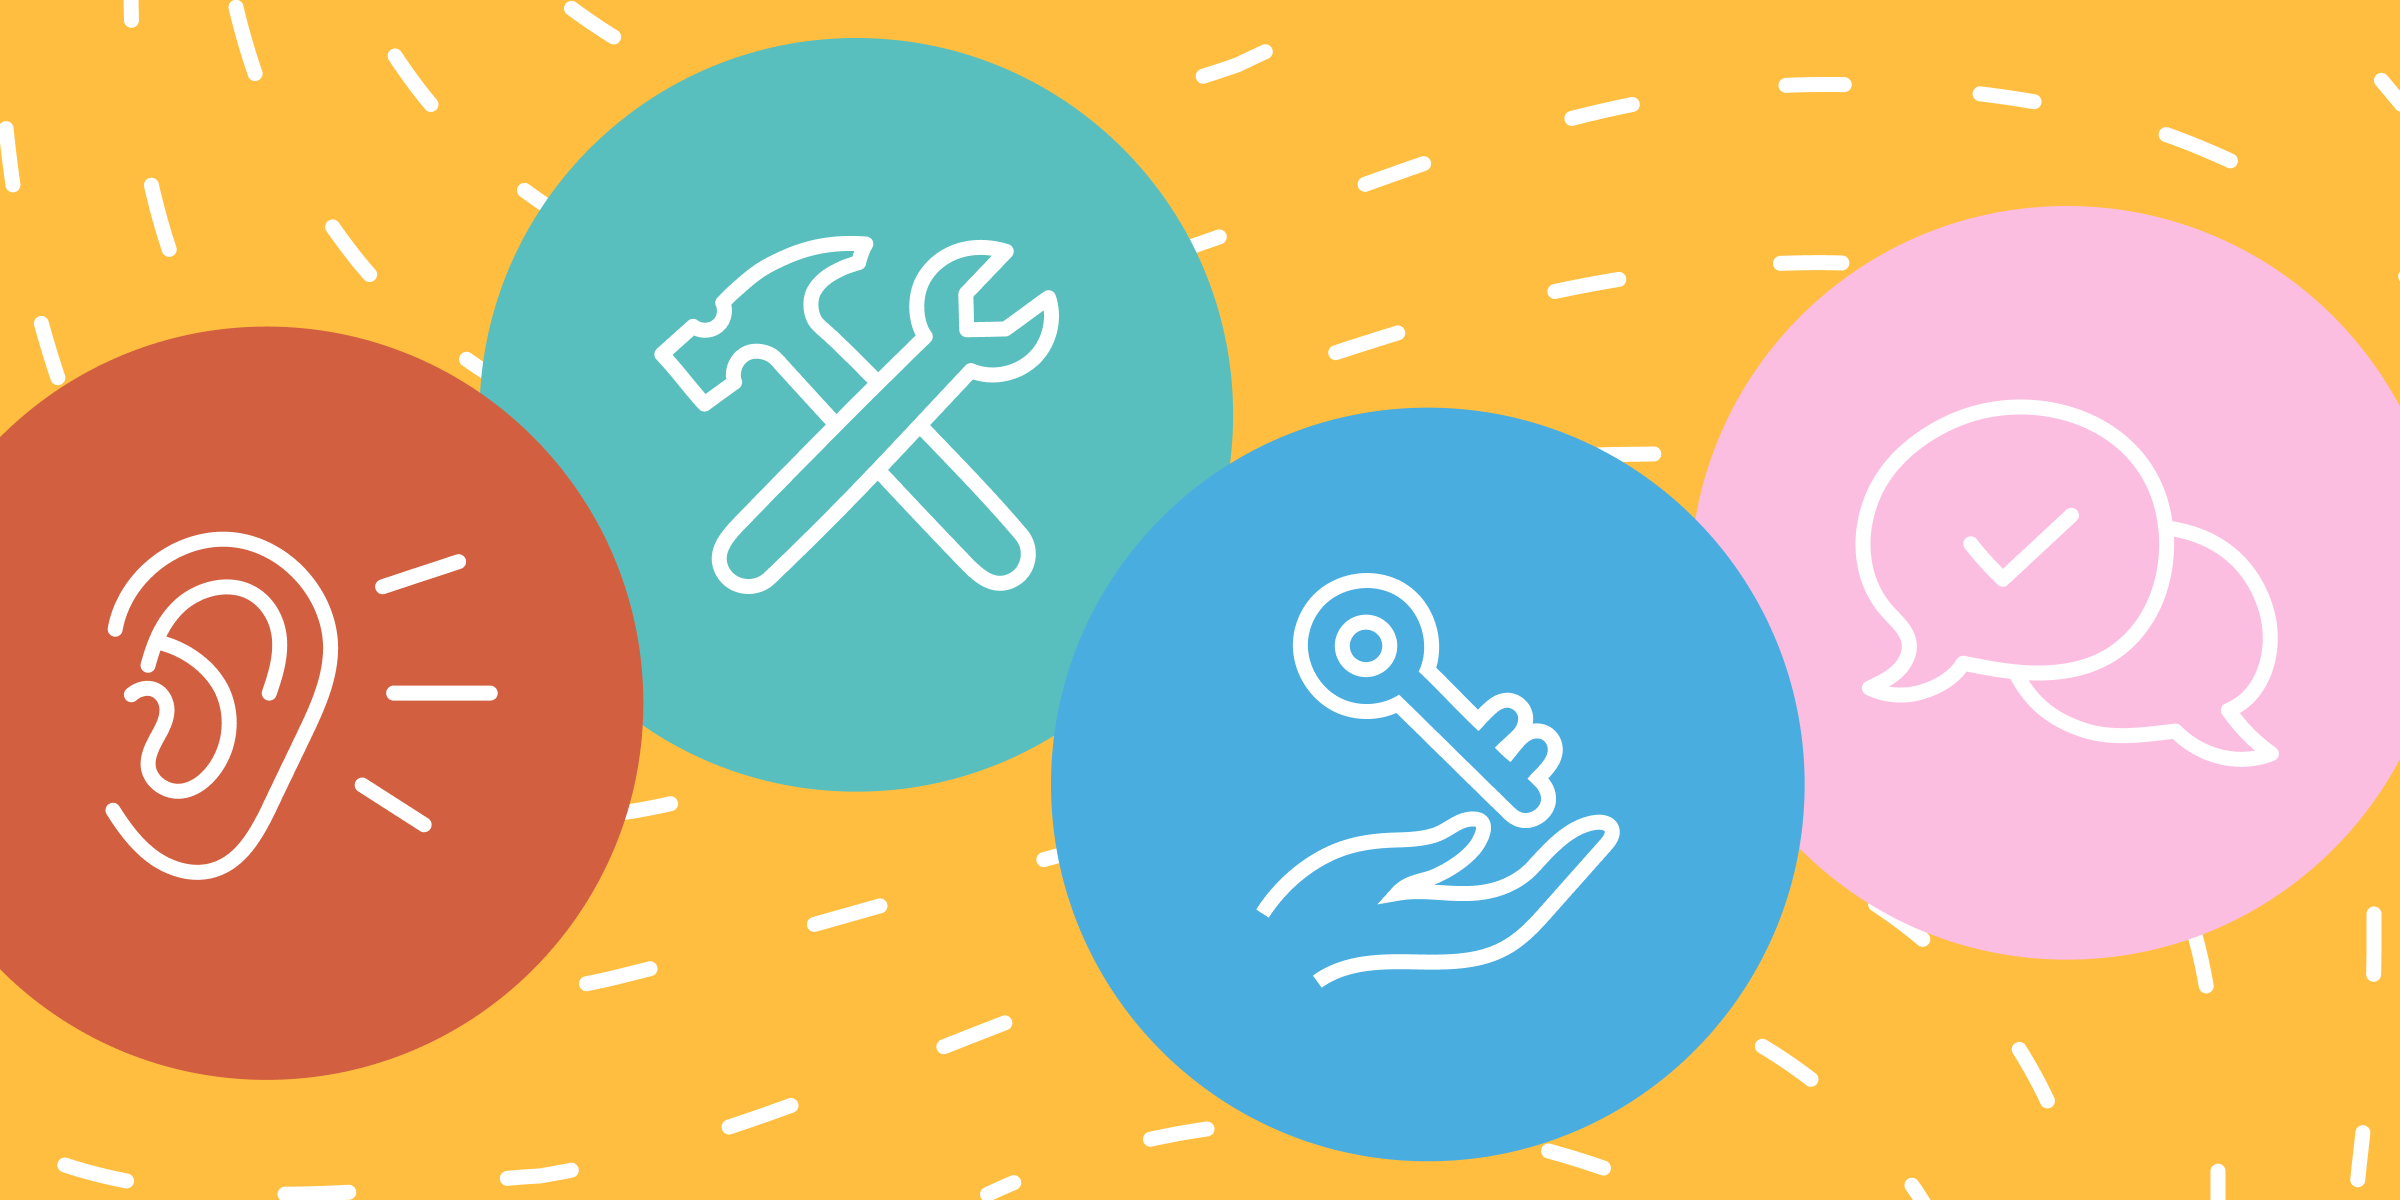 Three colorful circles against an orange background. The circles contain a listening ear, a hammer and wrench, a hand with a key, and two speech bubbles, respectively.